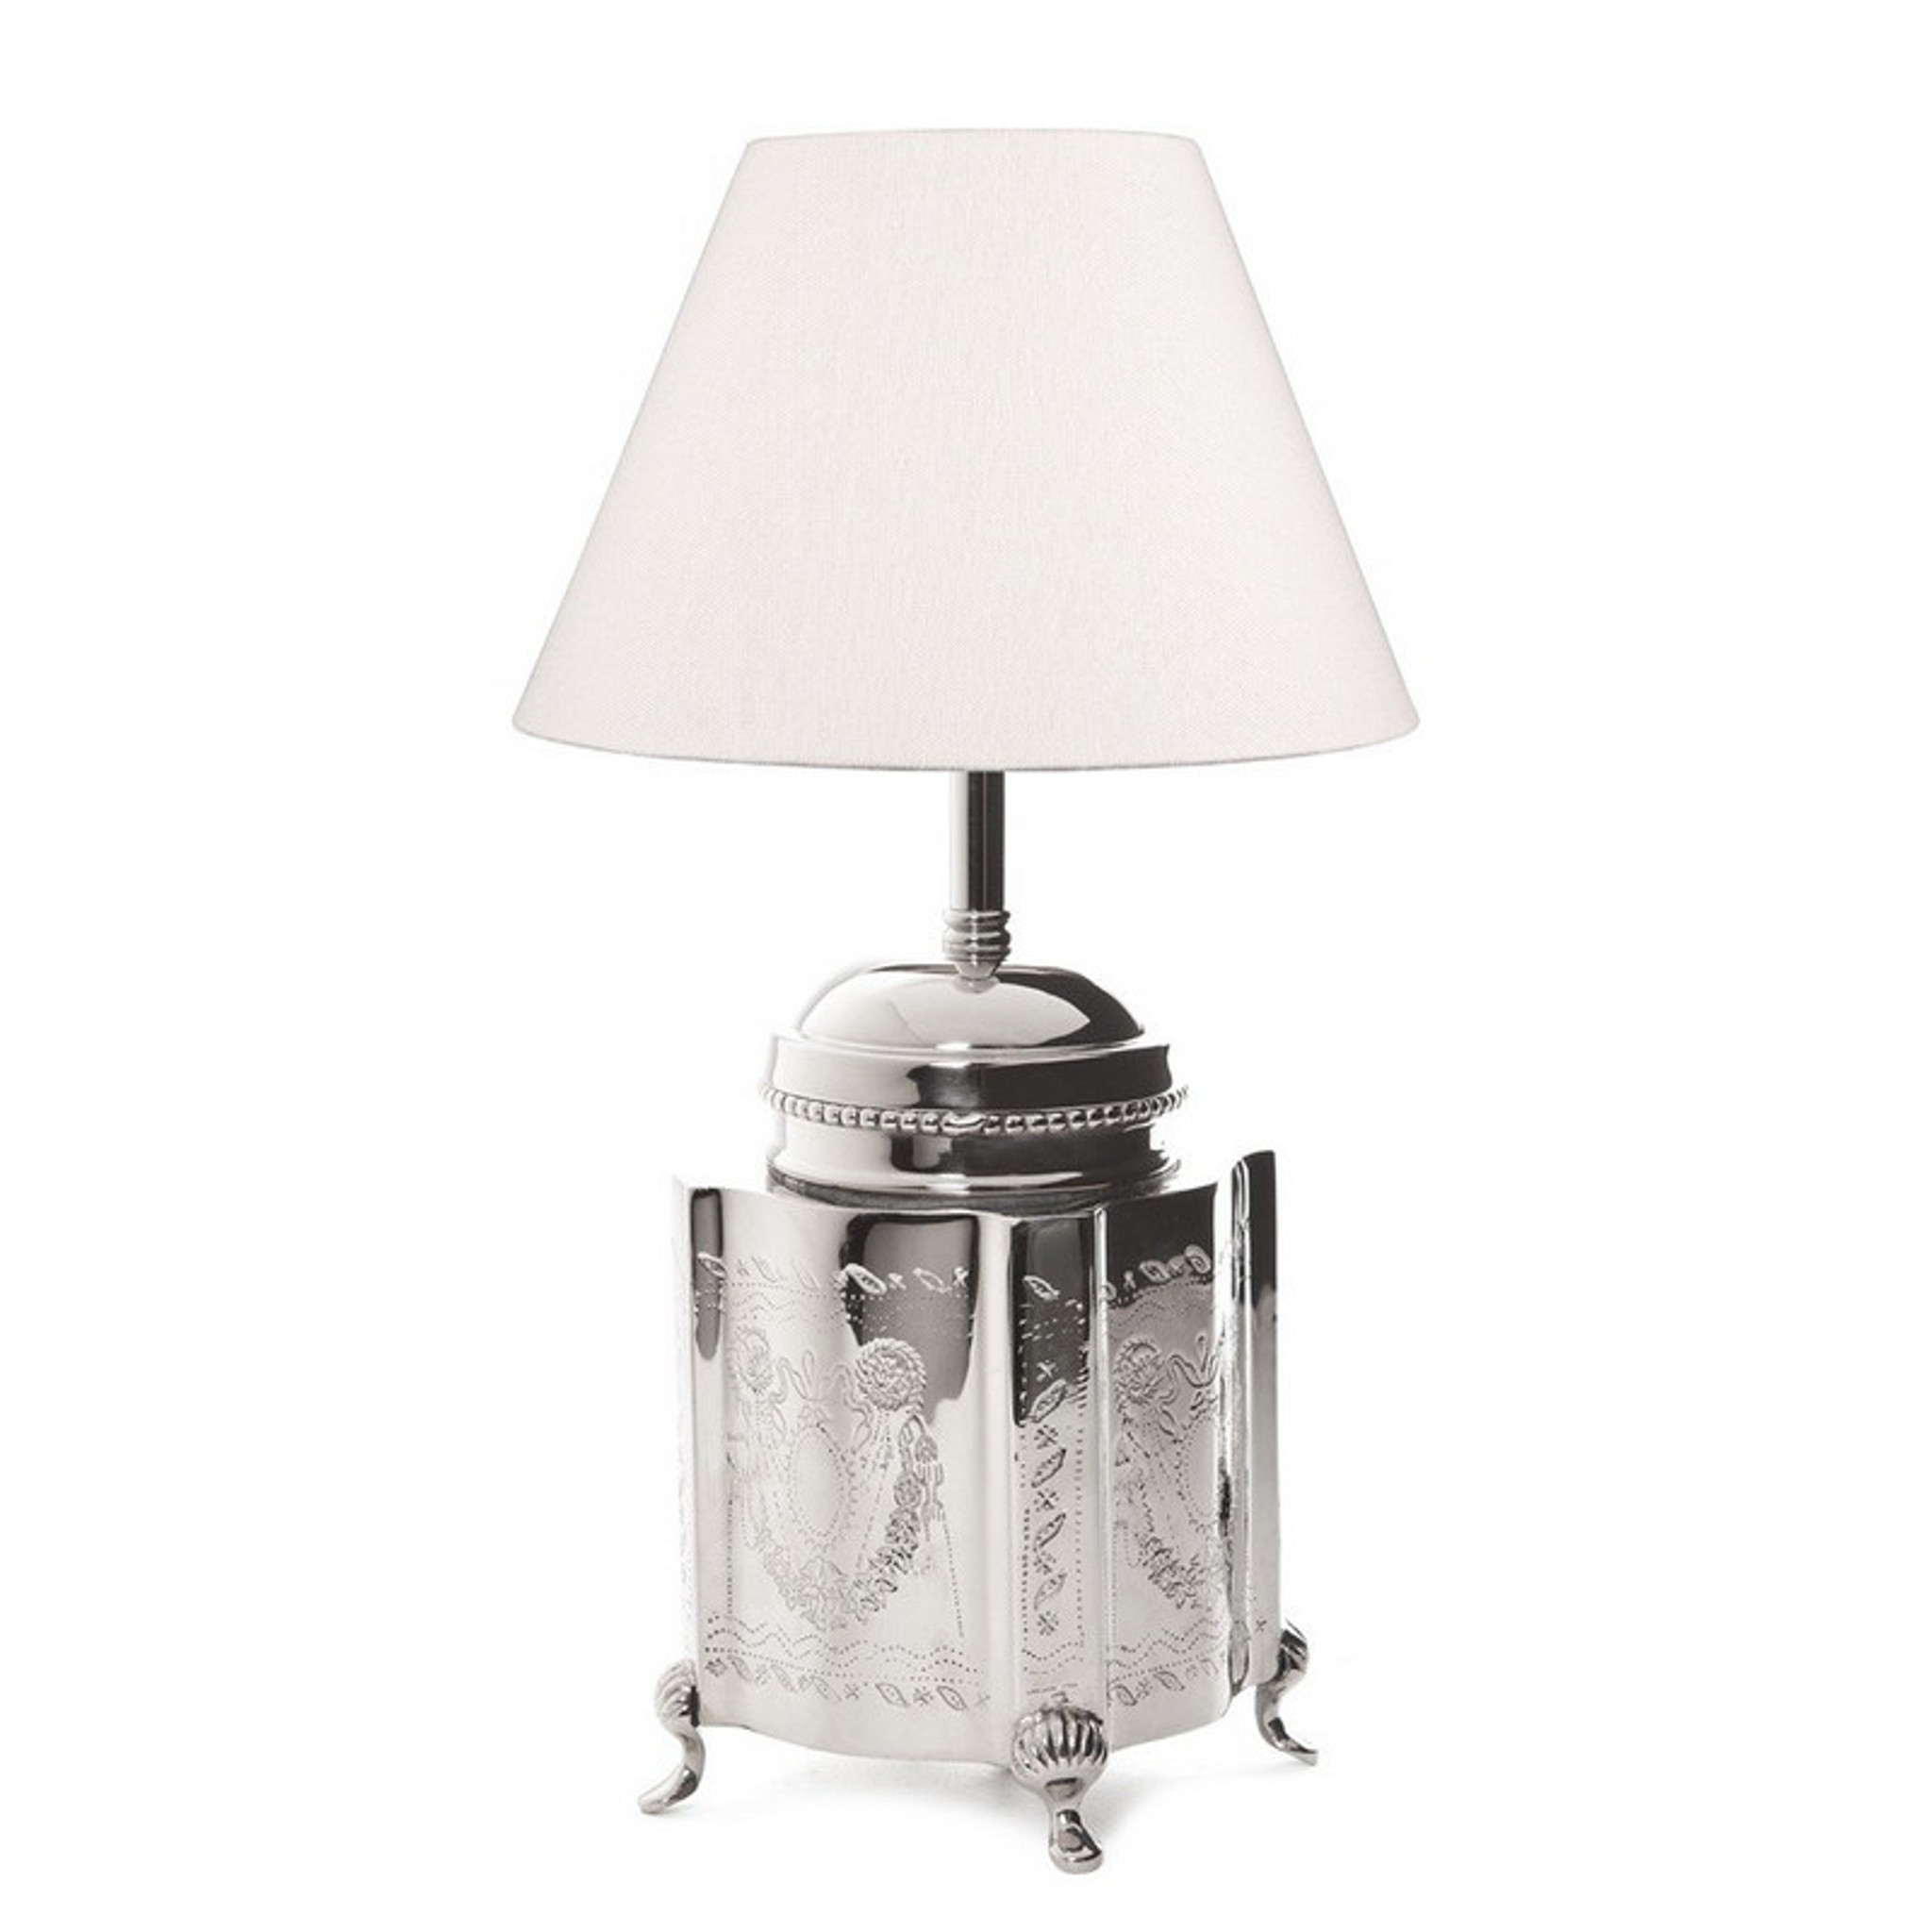 Kensington tea caddy table lamp nickel lighting emac for Lawton architectural products